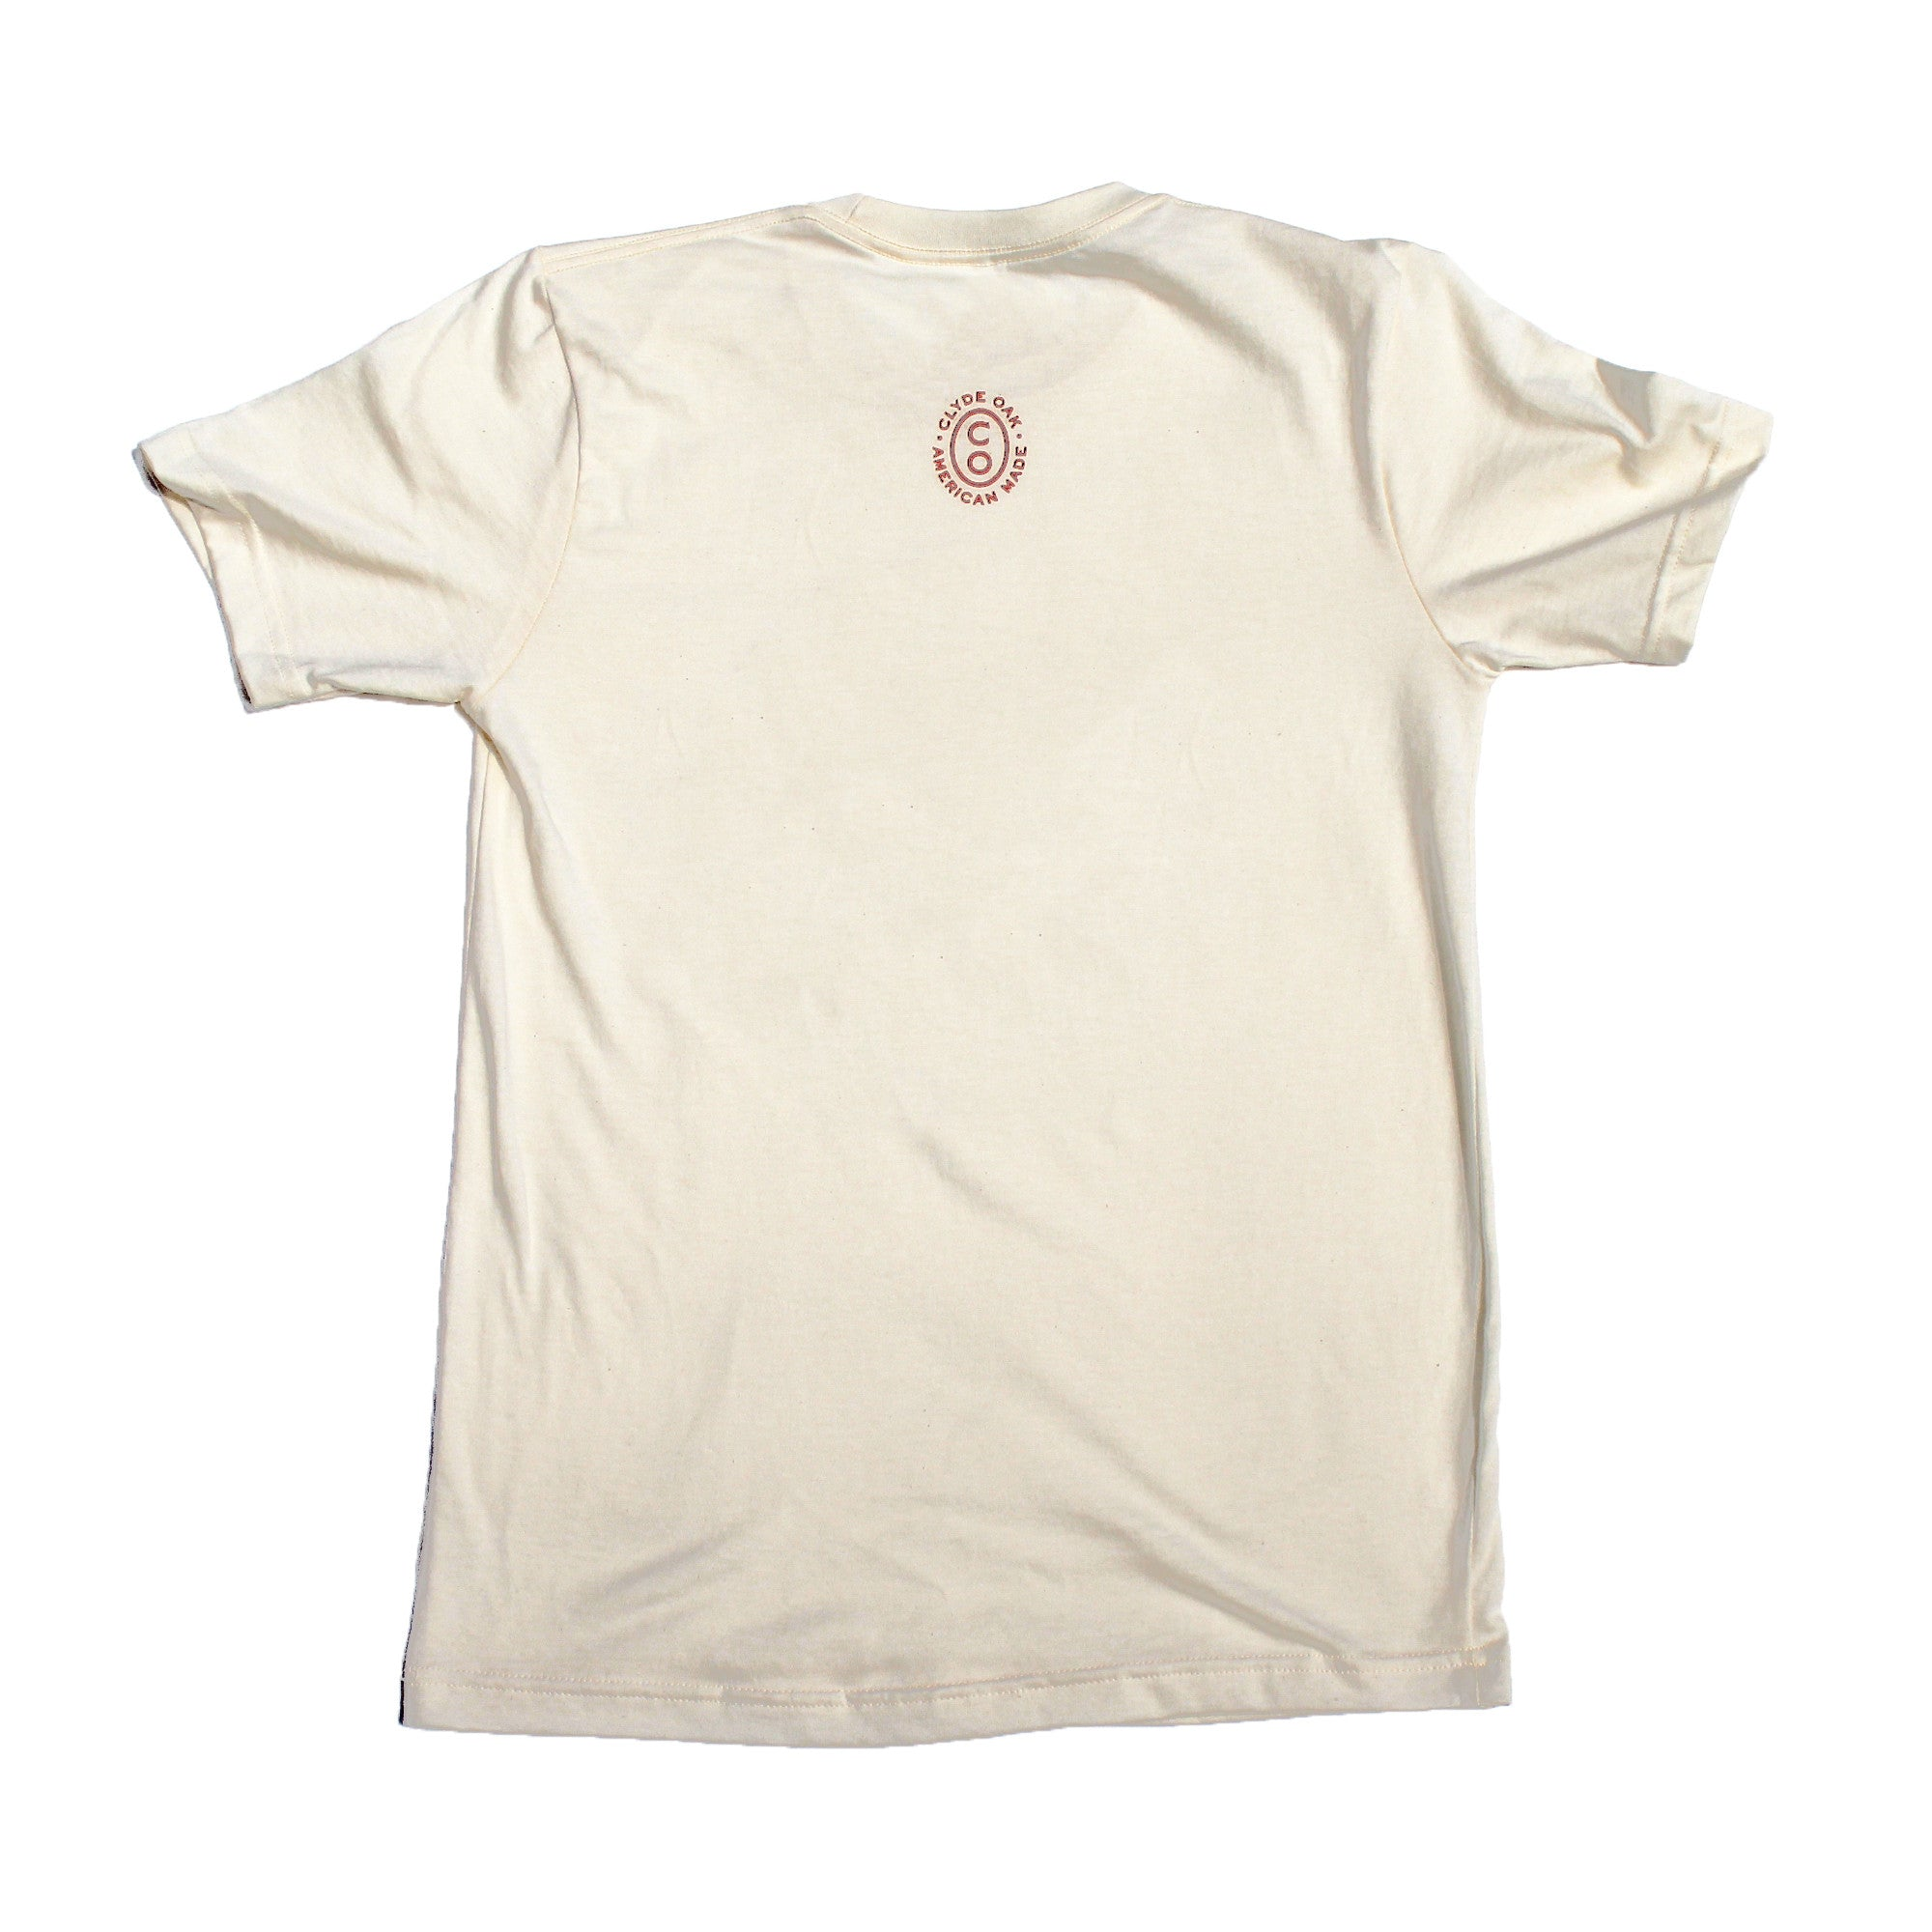 Bear Tee | Natural - Clyde Oak Brand - 2